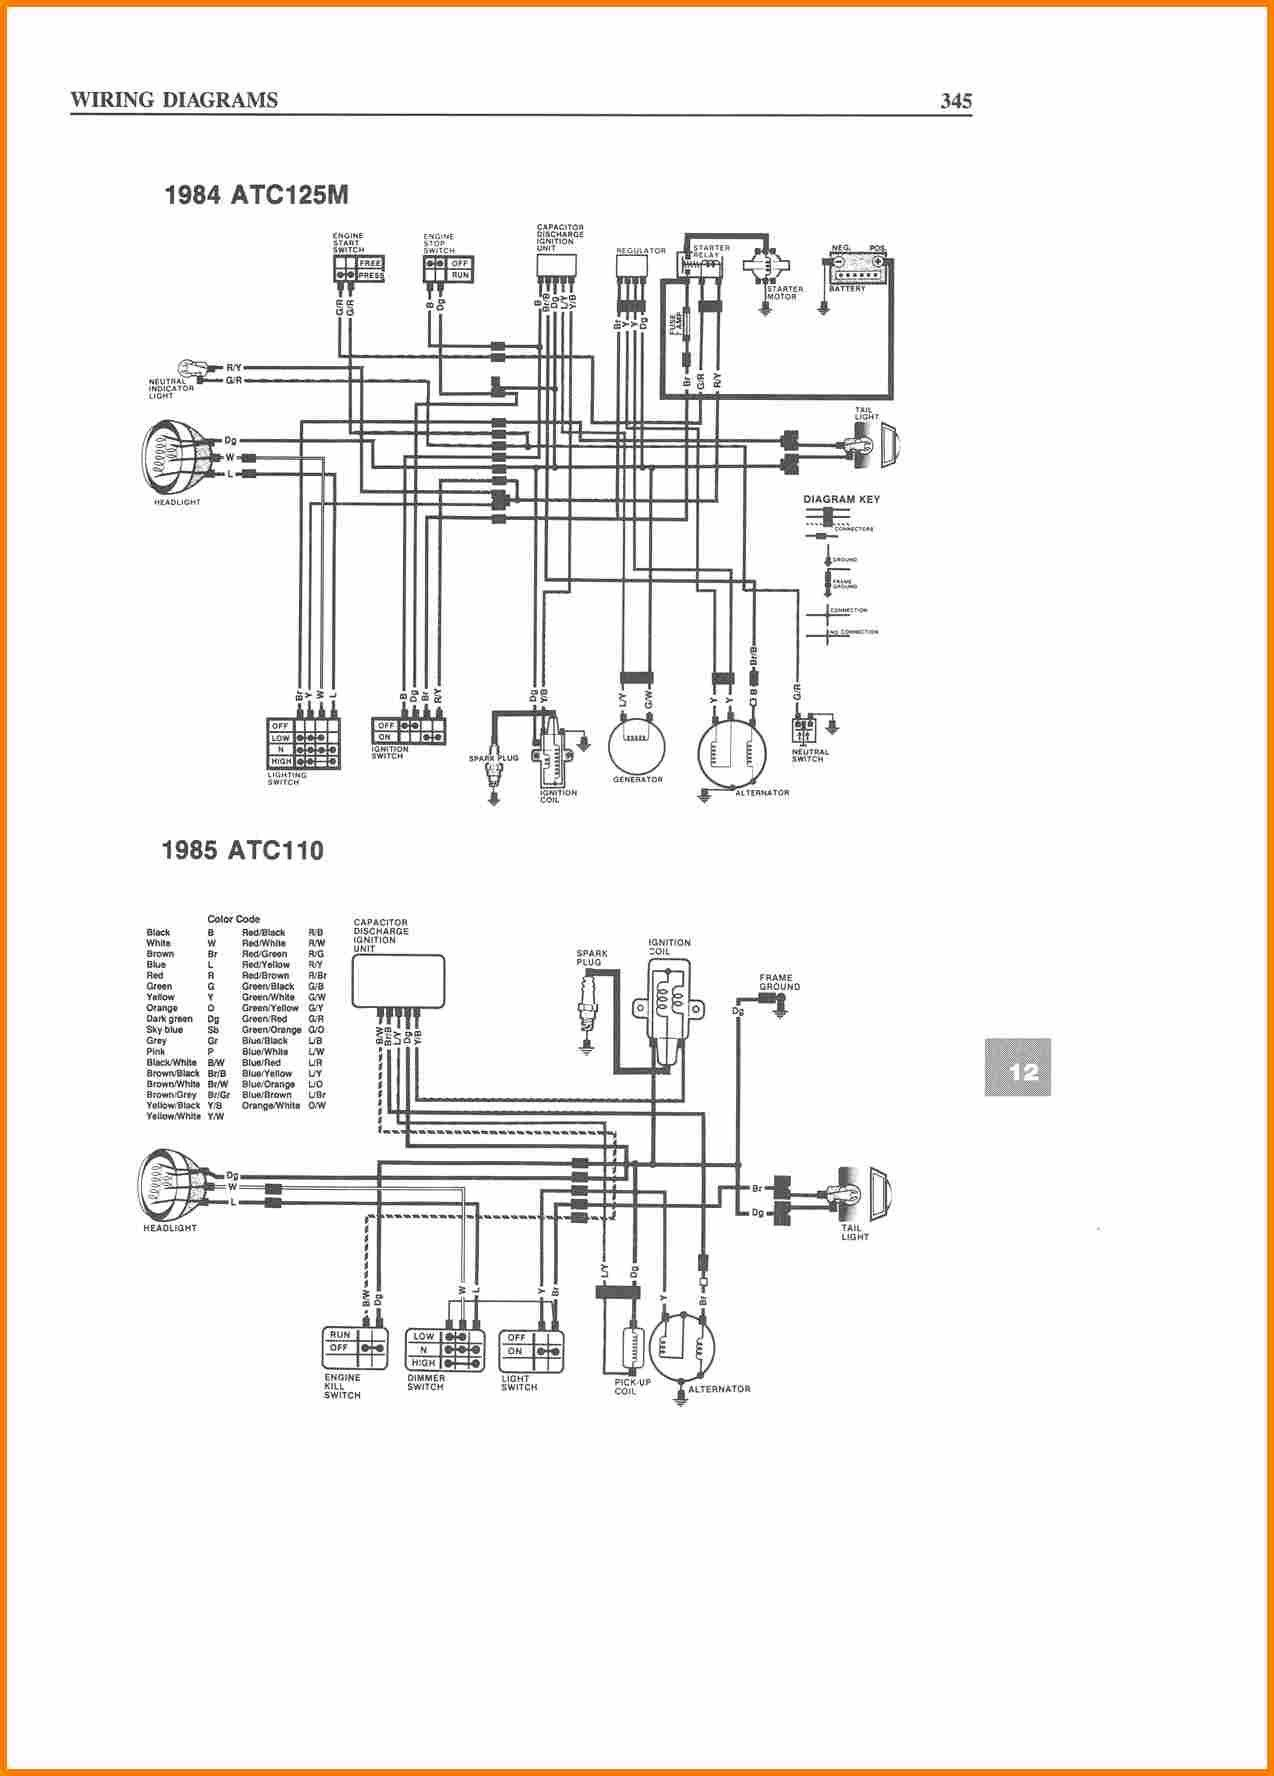 Kazuma Redcat Atv 200cc Wiring Diagram Circuit Schematic Simple 2006 Chinese